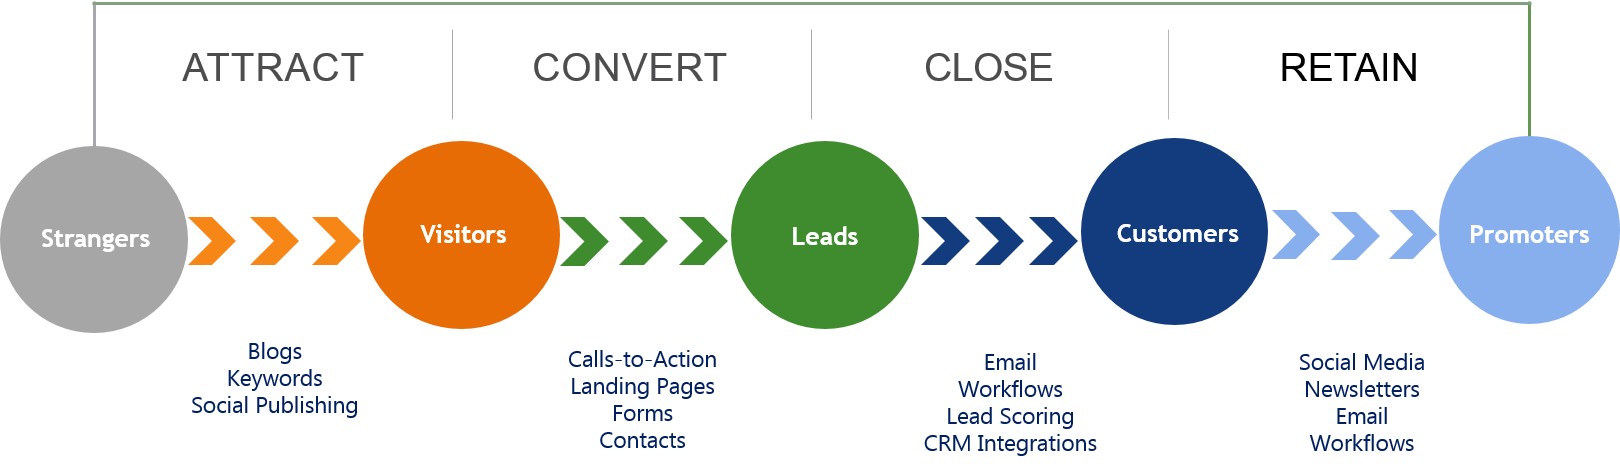 Inbound Marketing Methodology 3.png